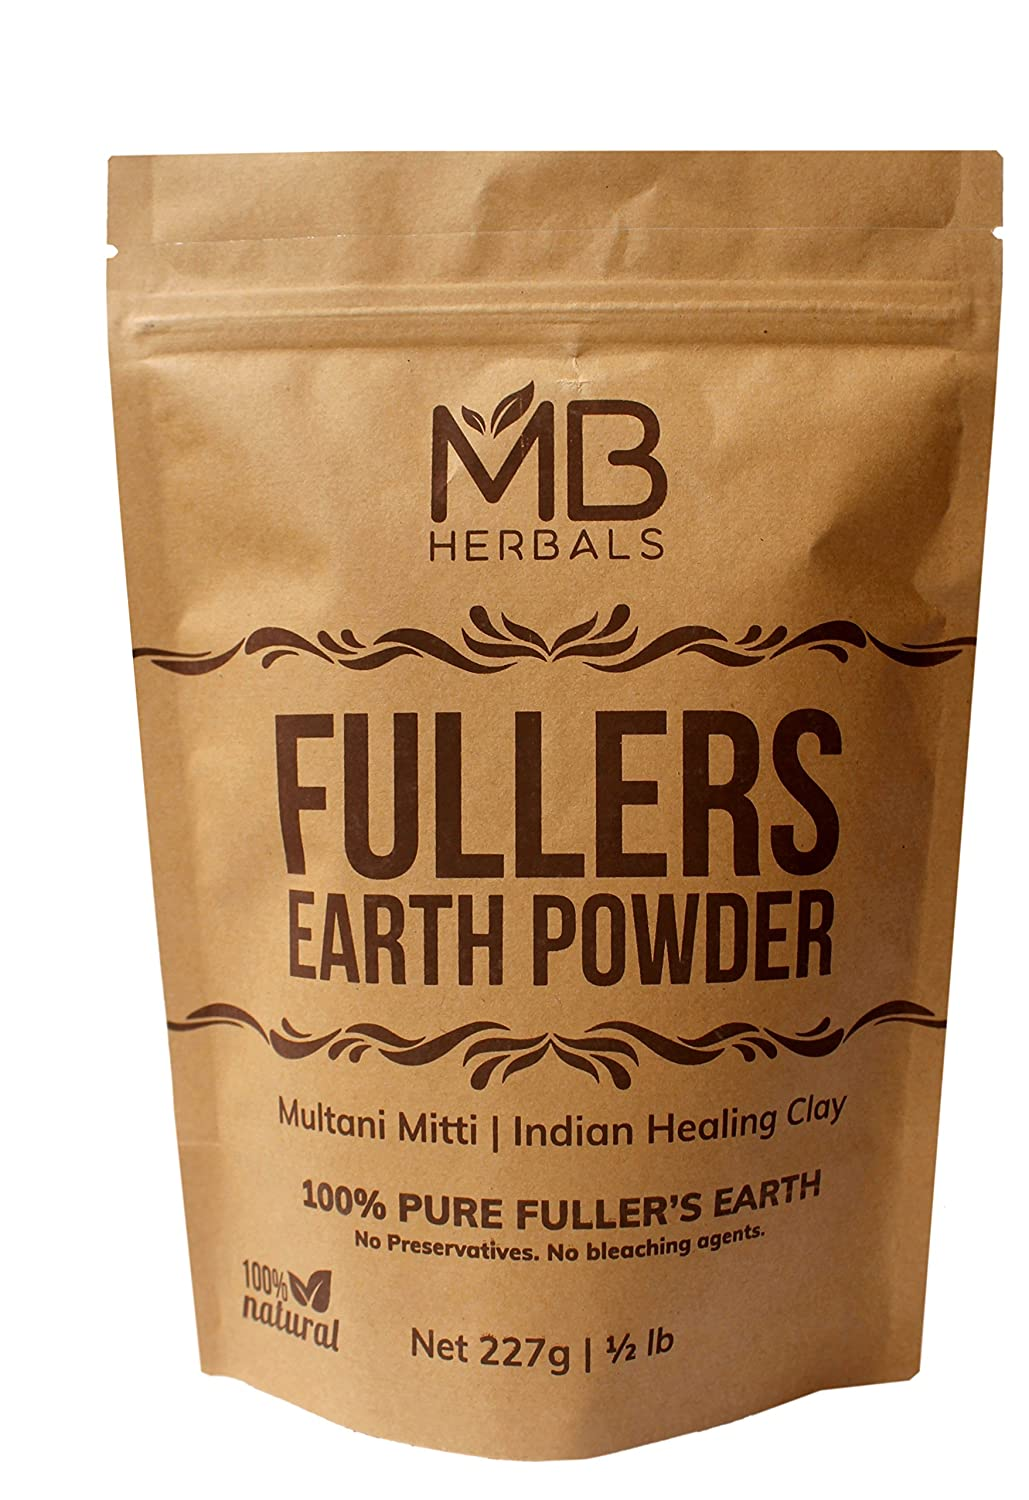 MB Herbals Fullers Earth Powder 227 Gram   Half Pound   Pure Fuller's Earth Powder   Multani Mud Mitti   Indian Healing Clay   Bentonite Clay   No Bleaching Agents   No Chemicals   No Added Fragrance